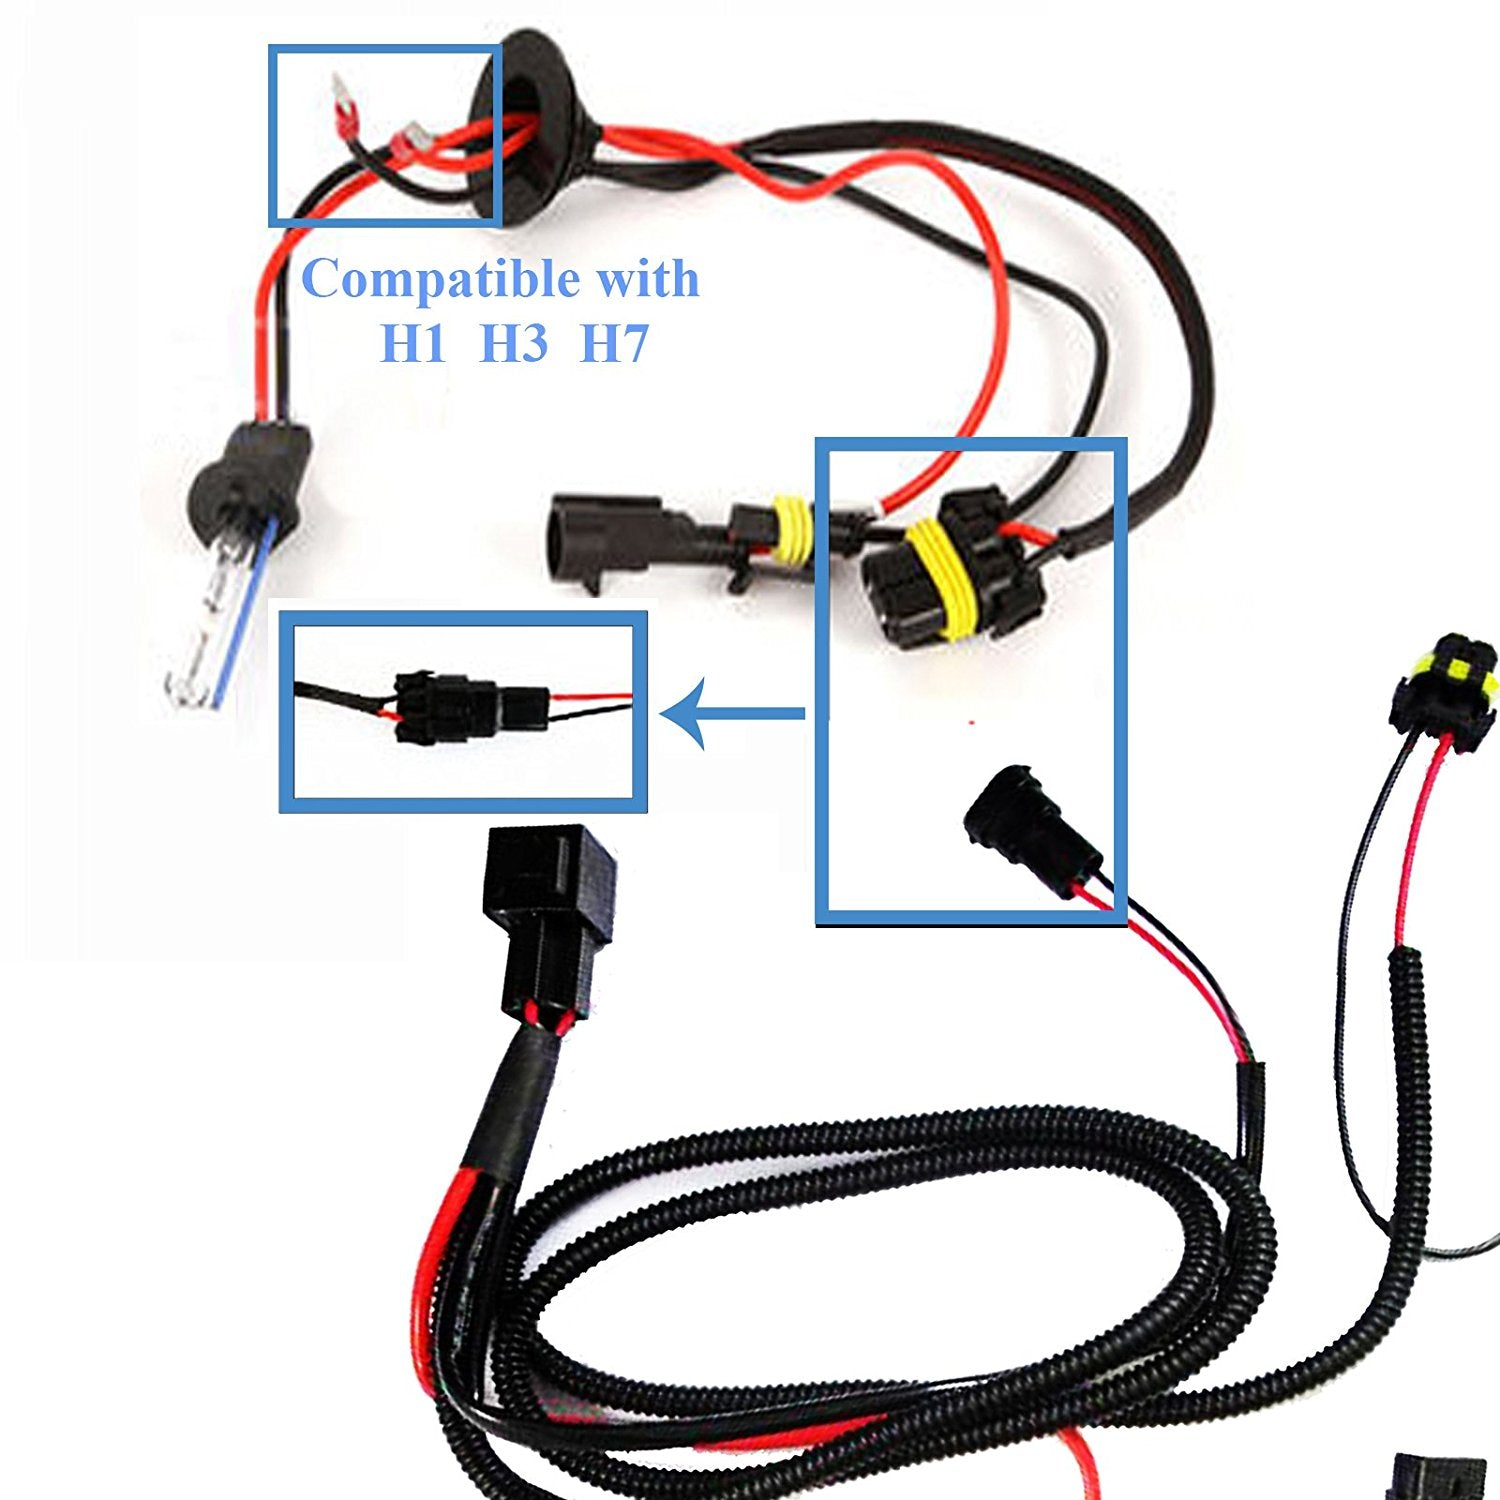 1 set H1 H3 H7 H11 9005 9006 HB4 HID Conversion Kit Relay Wire ... H Wiring Harness on h4 wiring harness, h15 wiring harness, h13 wiring harness, mustang wiring harness, e2 wiring harness, t3 wiring harness, s13 wiring harness, escalade wiring harness, vue wiring harness, h1 wiring harness, camaro wiring harness, tundra wiring harness, wrangler wiring harness, h2 wiring harness, fj cruiser wiring harness, ranger wiring harness, b2 wiring harness, enclave wiring harness, f1 wiring harness, hhr wiring harness,